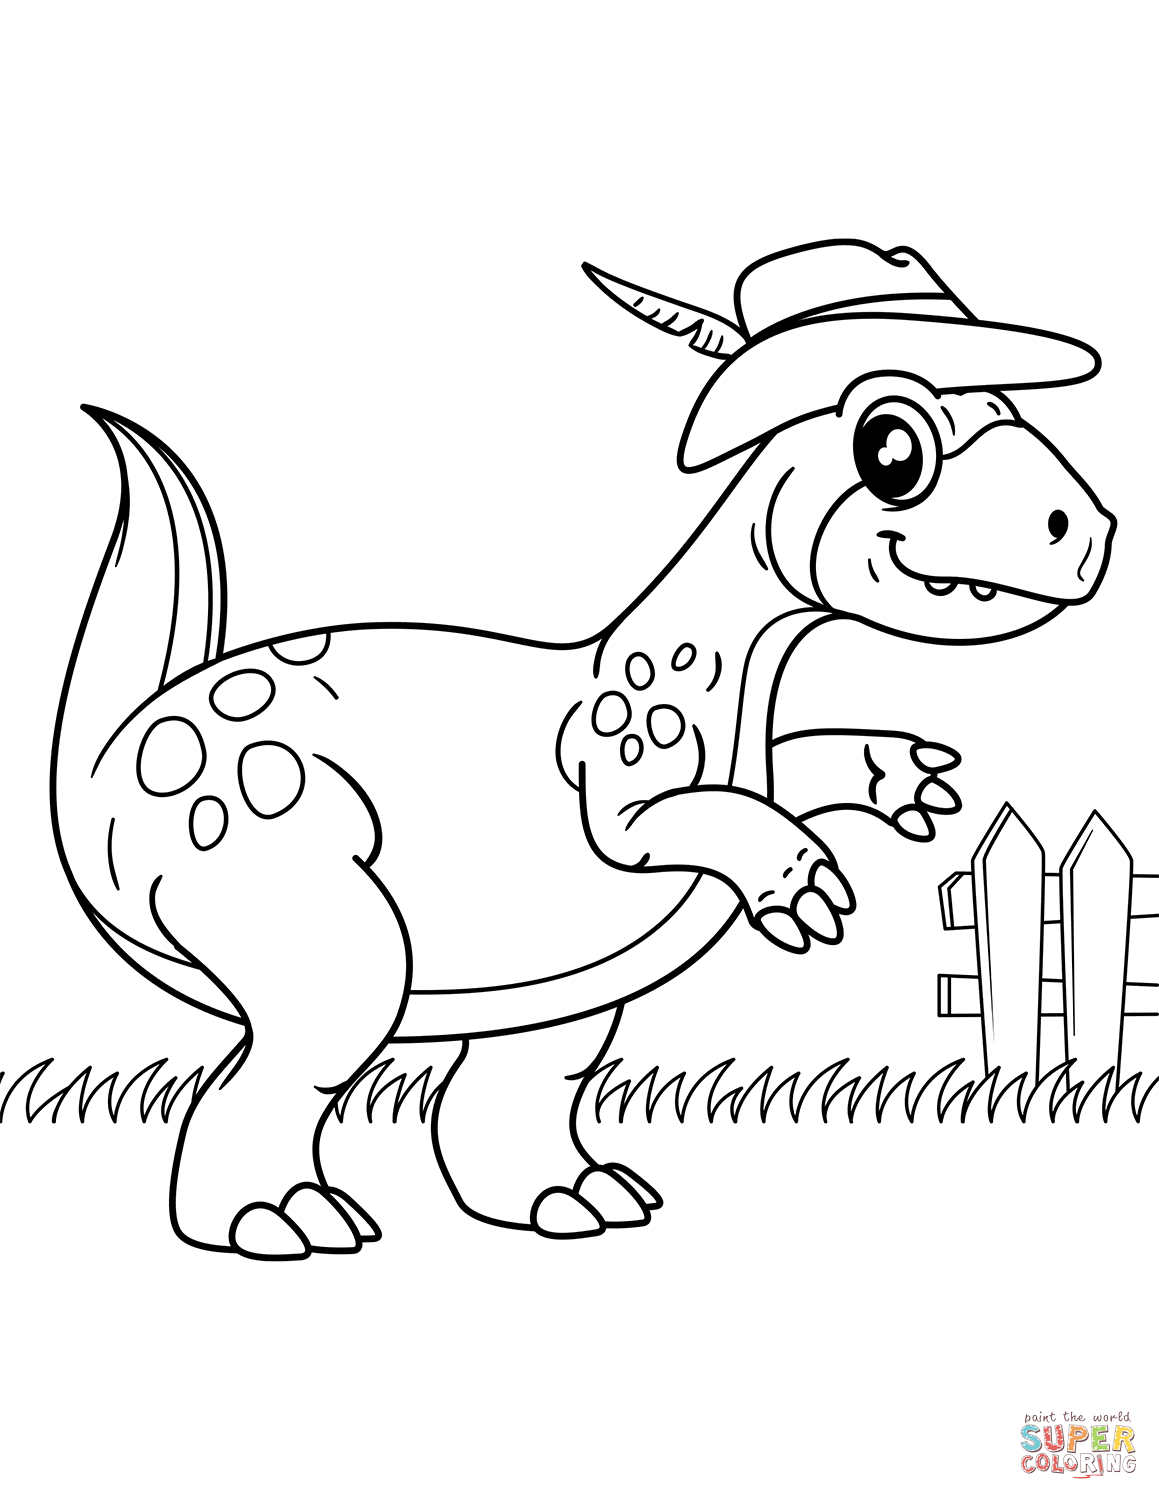 Cowgirl Hat Drawing At Getdrawings